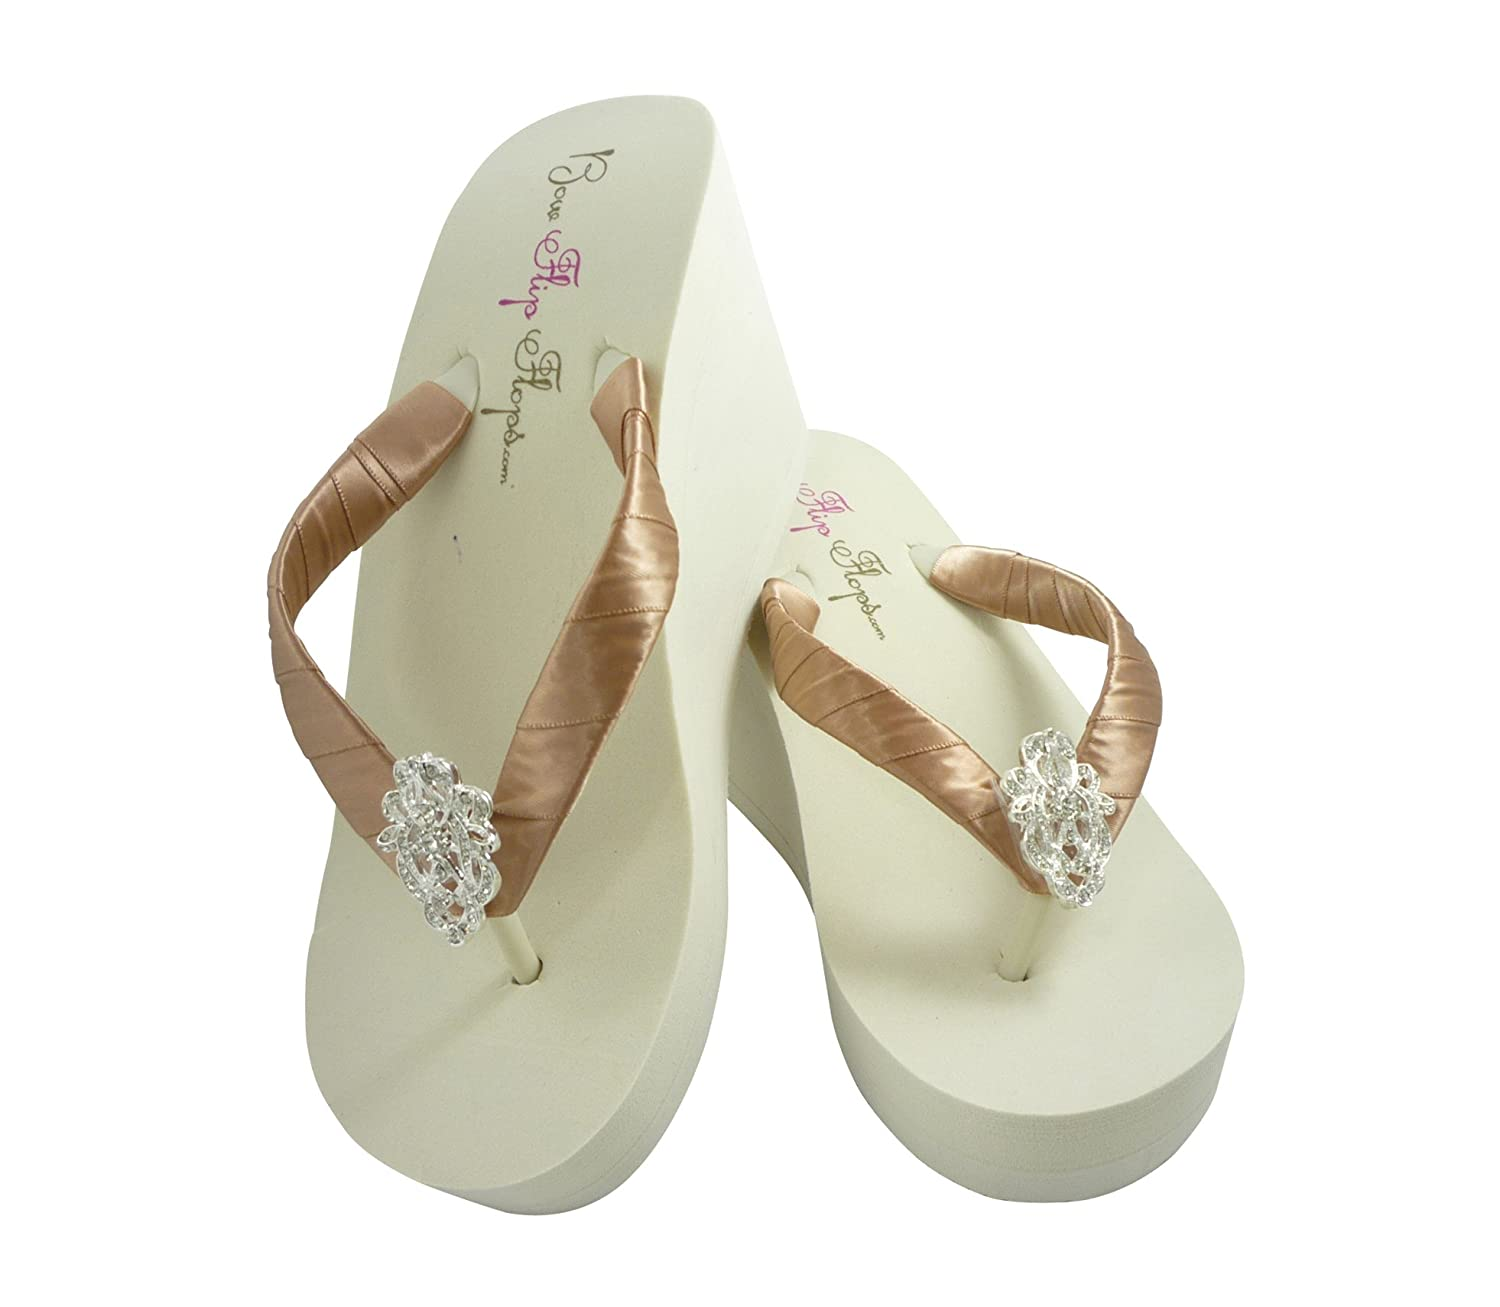 d5d6c4ab8 Amazon.com  Pecan Rose Gold High Ivory Flip Flops with 3.5 inch heel   Handmade